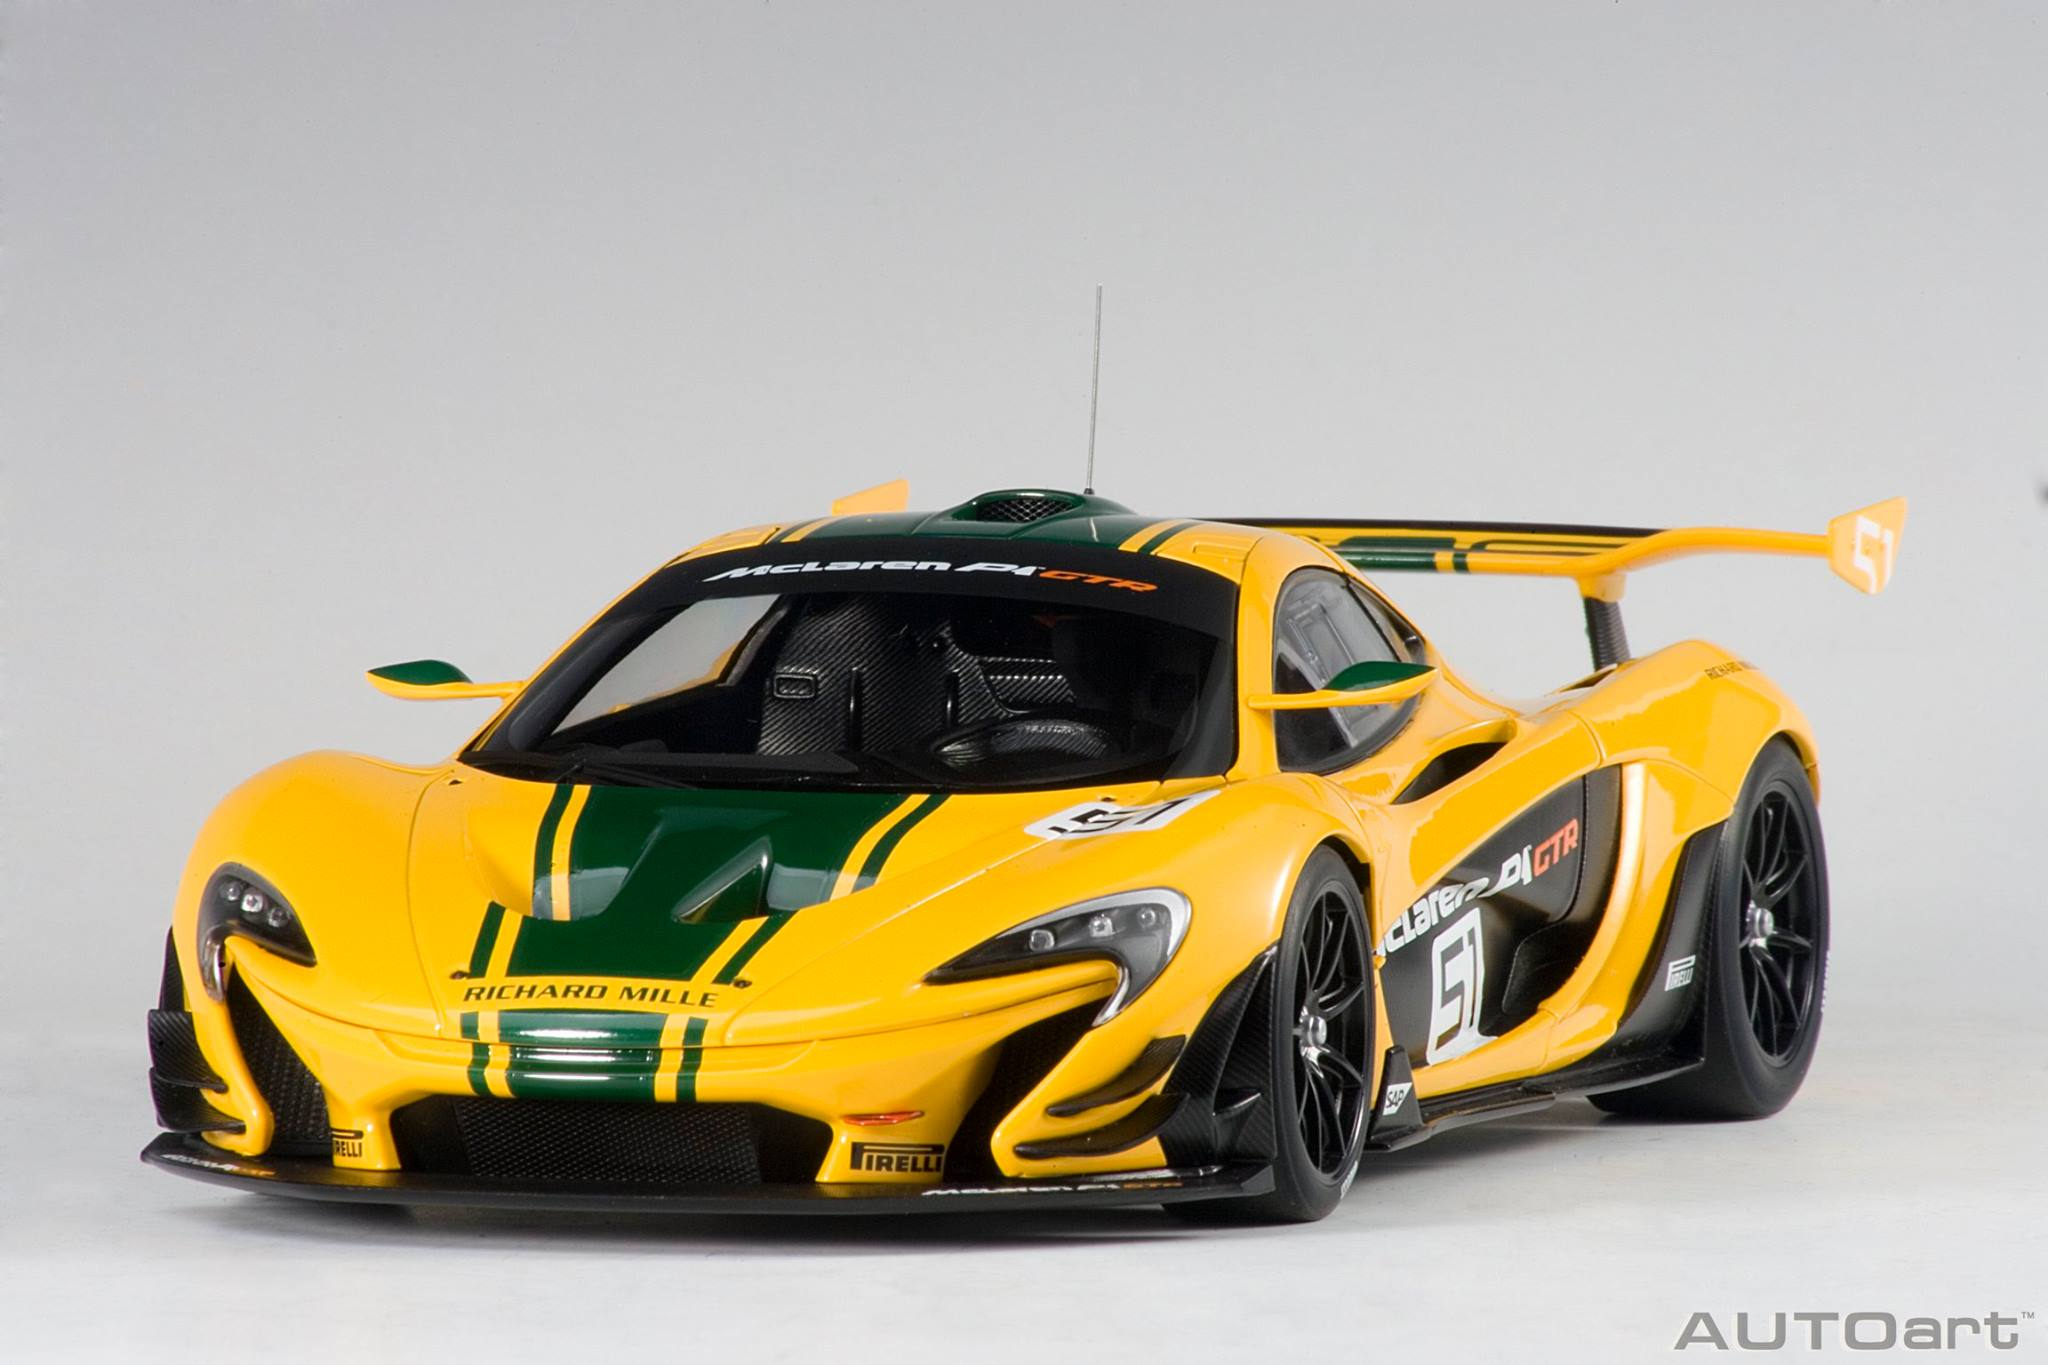 autoart s 1 18 mclaren p1 gtr coming soon xdiecast. Black Bedroom Furniture Sets. Home Design Ideas